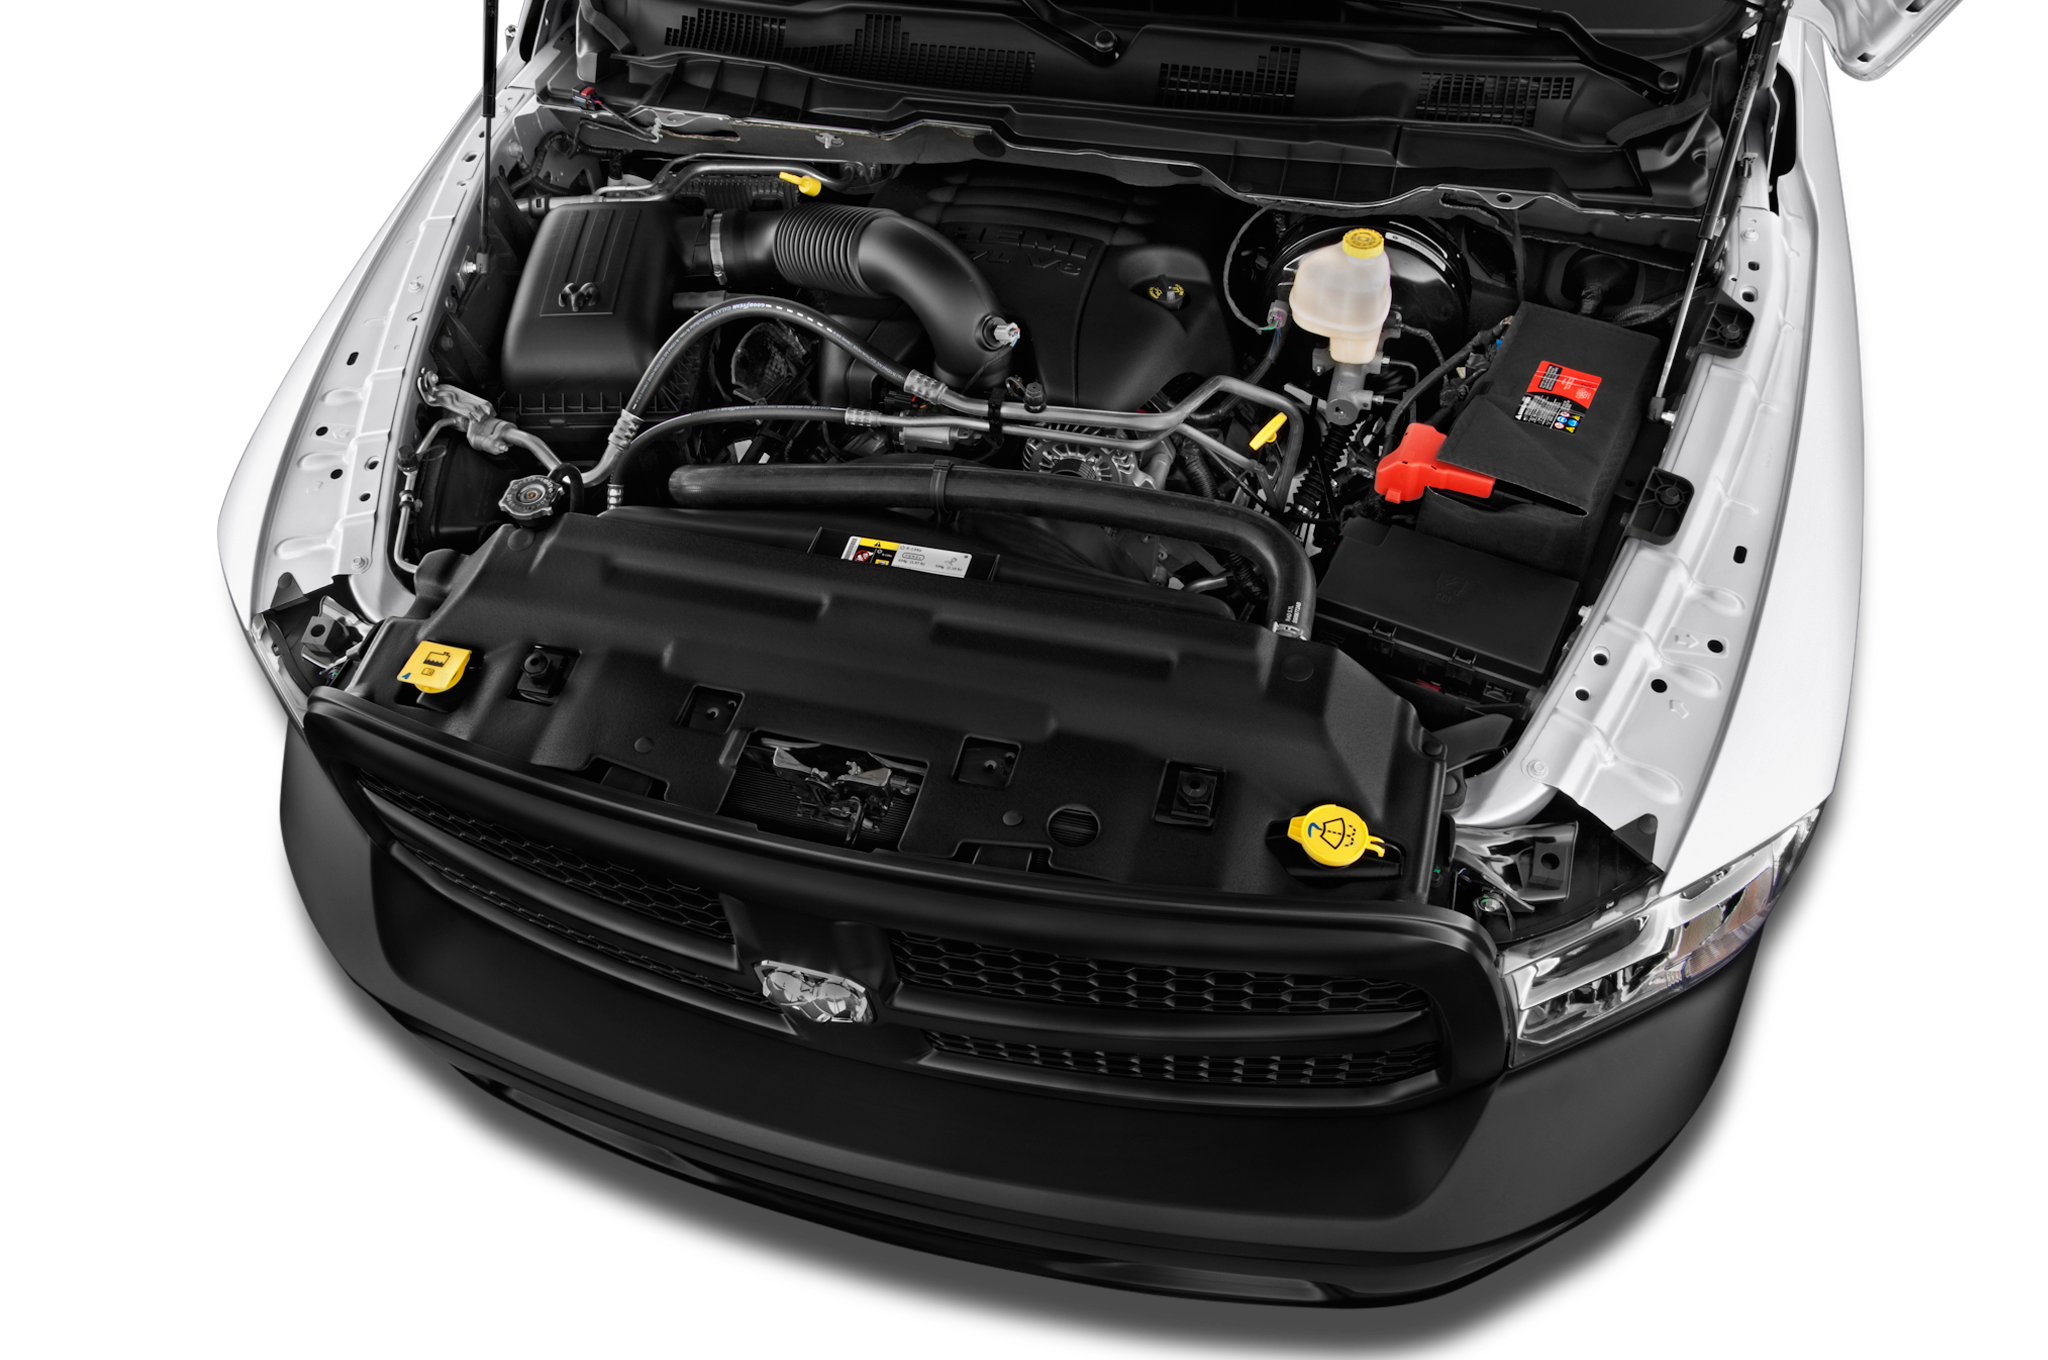 2018 Dodge Ram 1500 engine